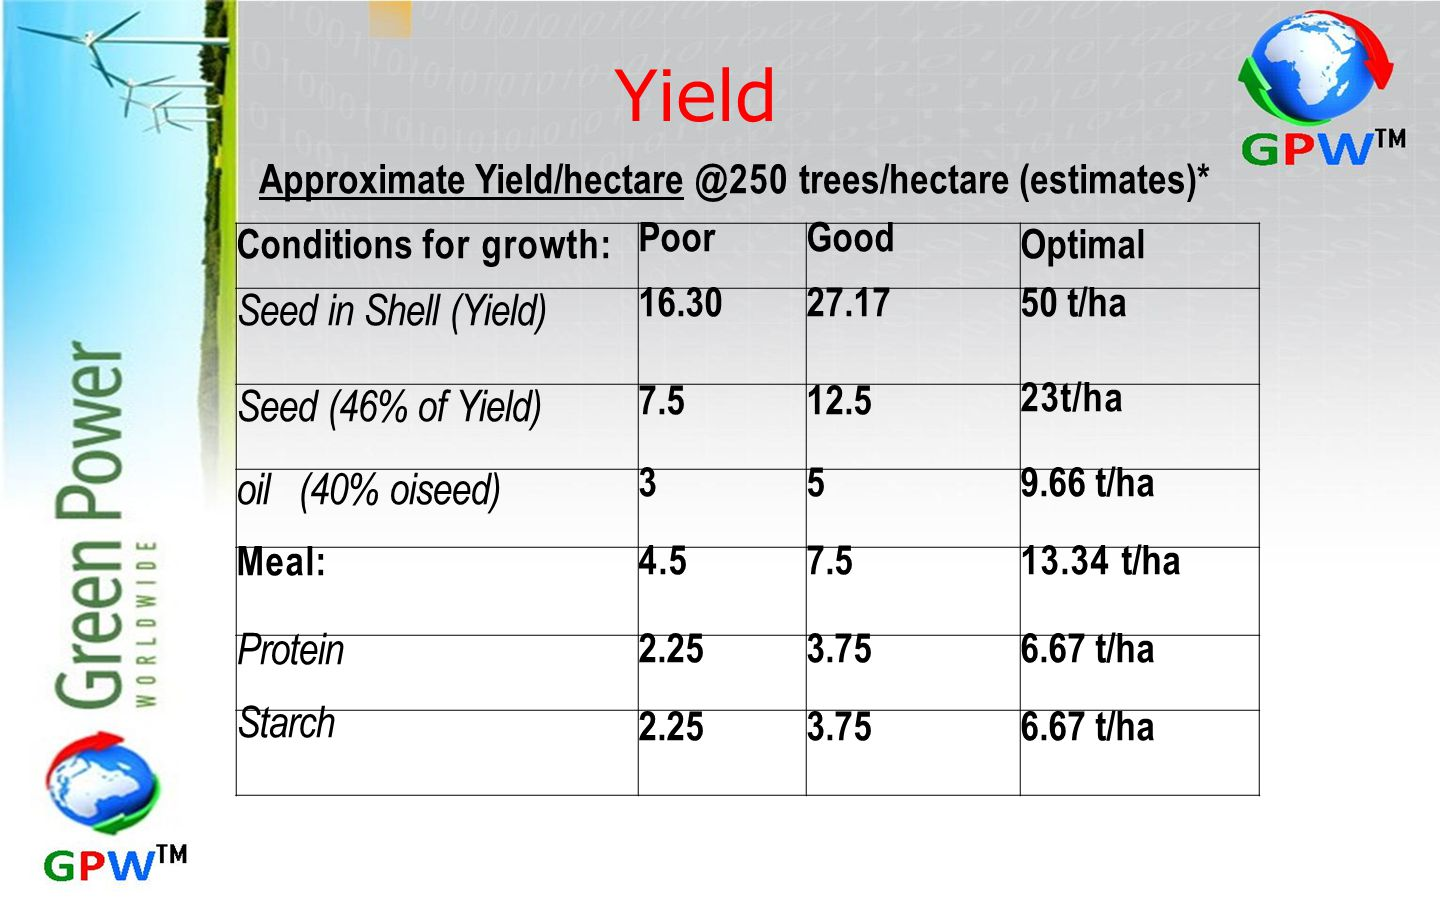 Yield Seed in Shell (Yield) Seed (46% of Yield) oil (40% oiseed)